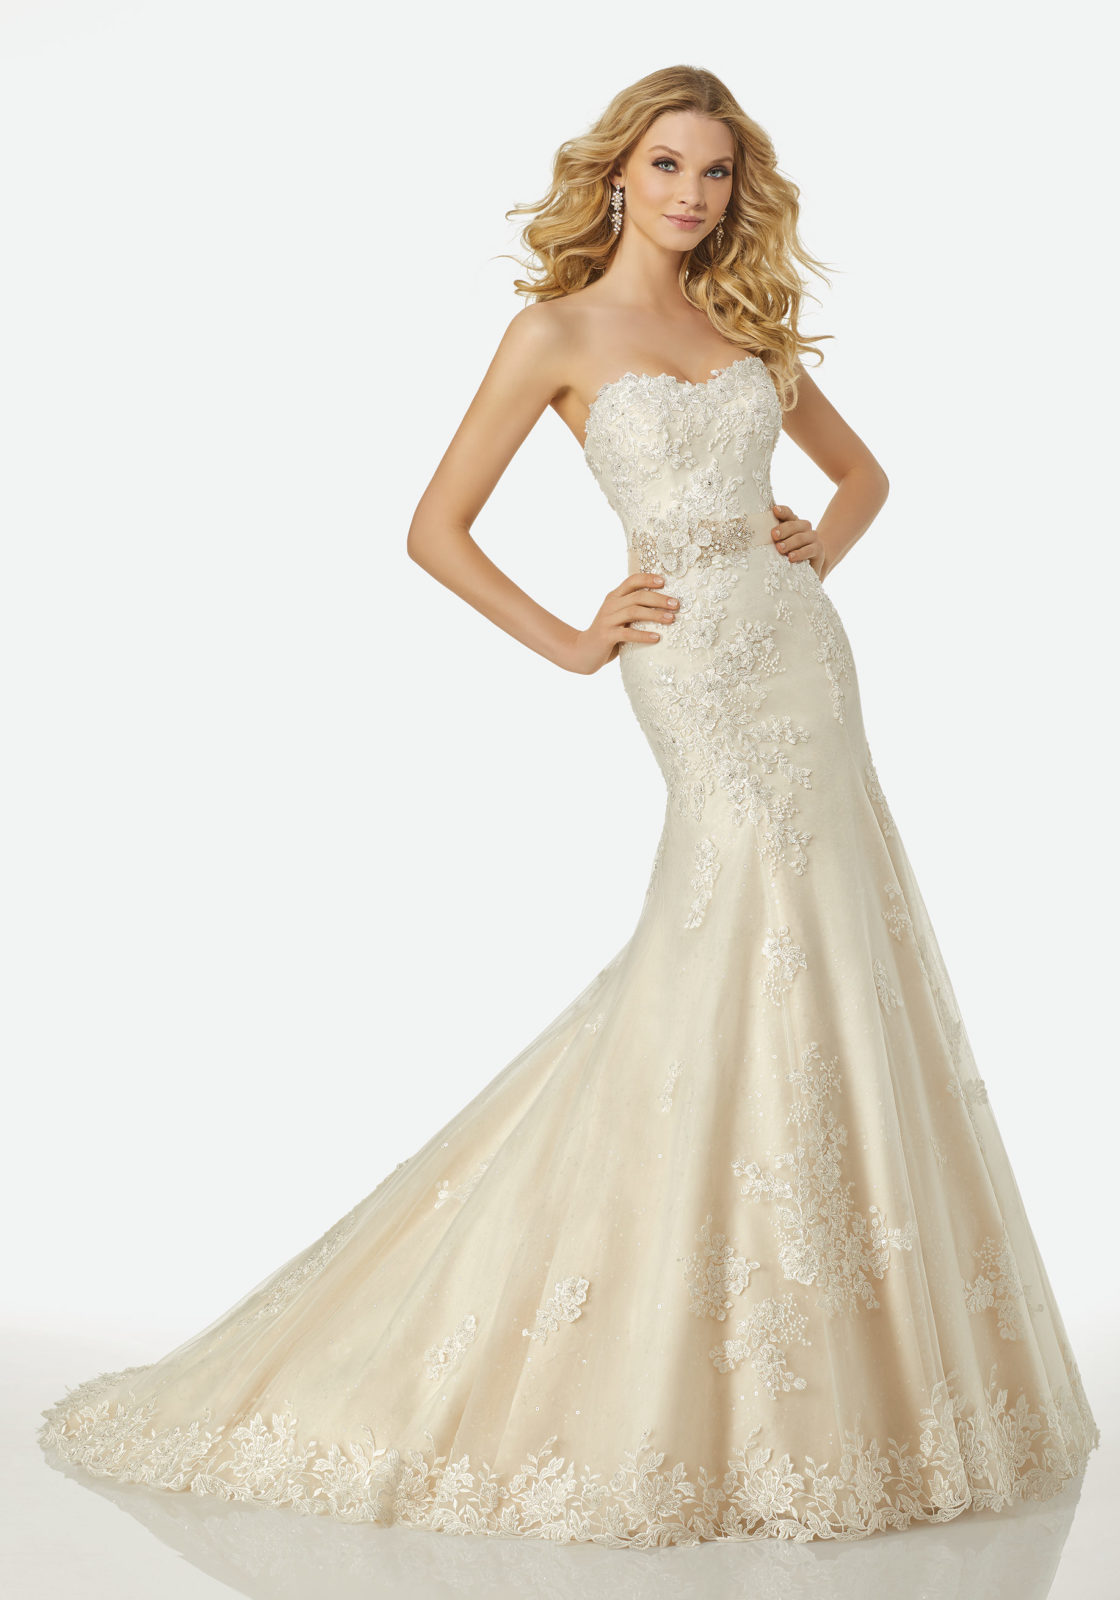 Randy Fenoli Bridal Trouwjurken New Styling